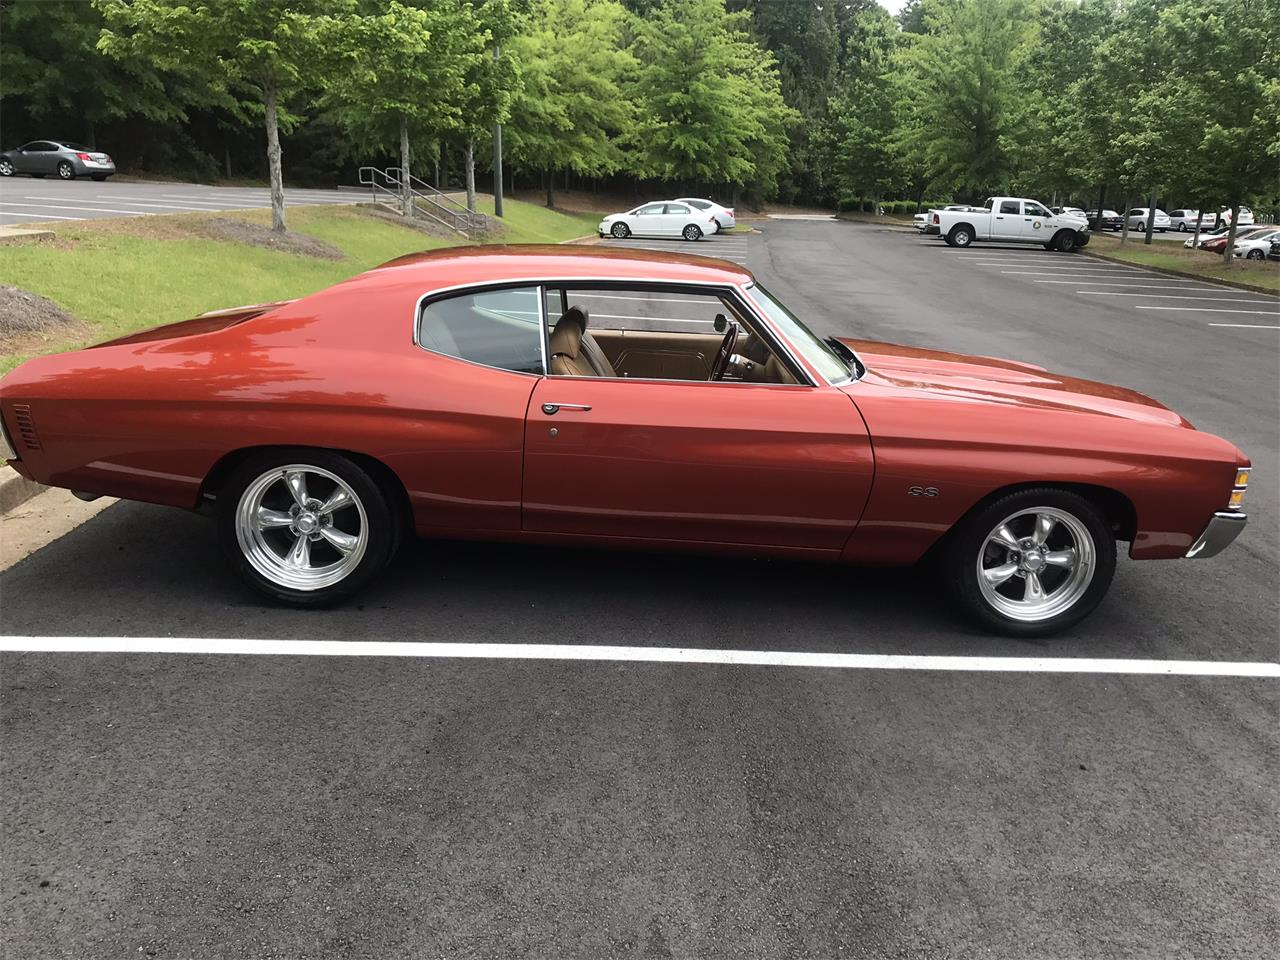 Large Picture of 1971 Chevelle SS - $36,000.00 Offered by a Private Seller - Q0XV